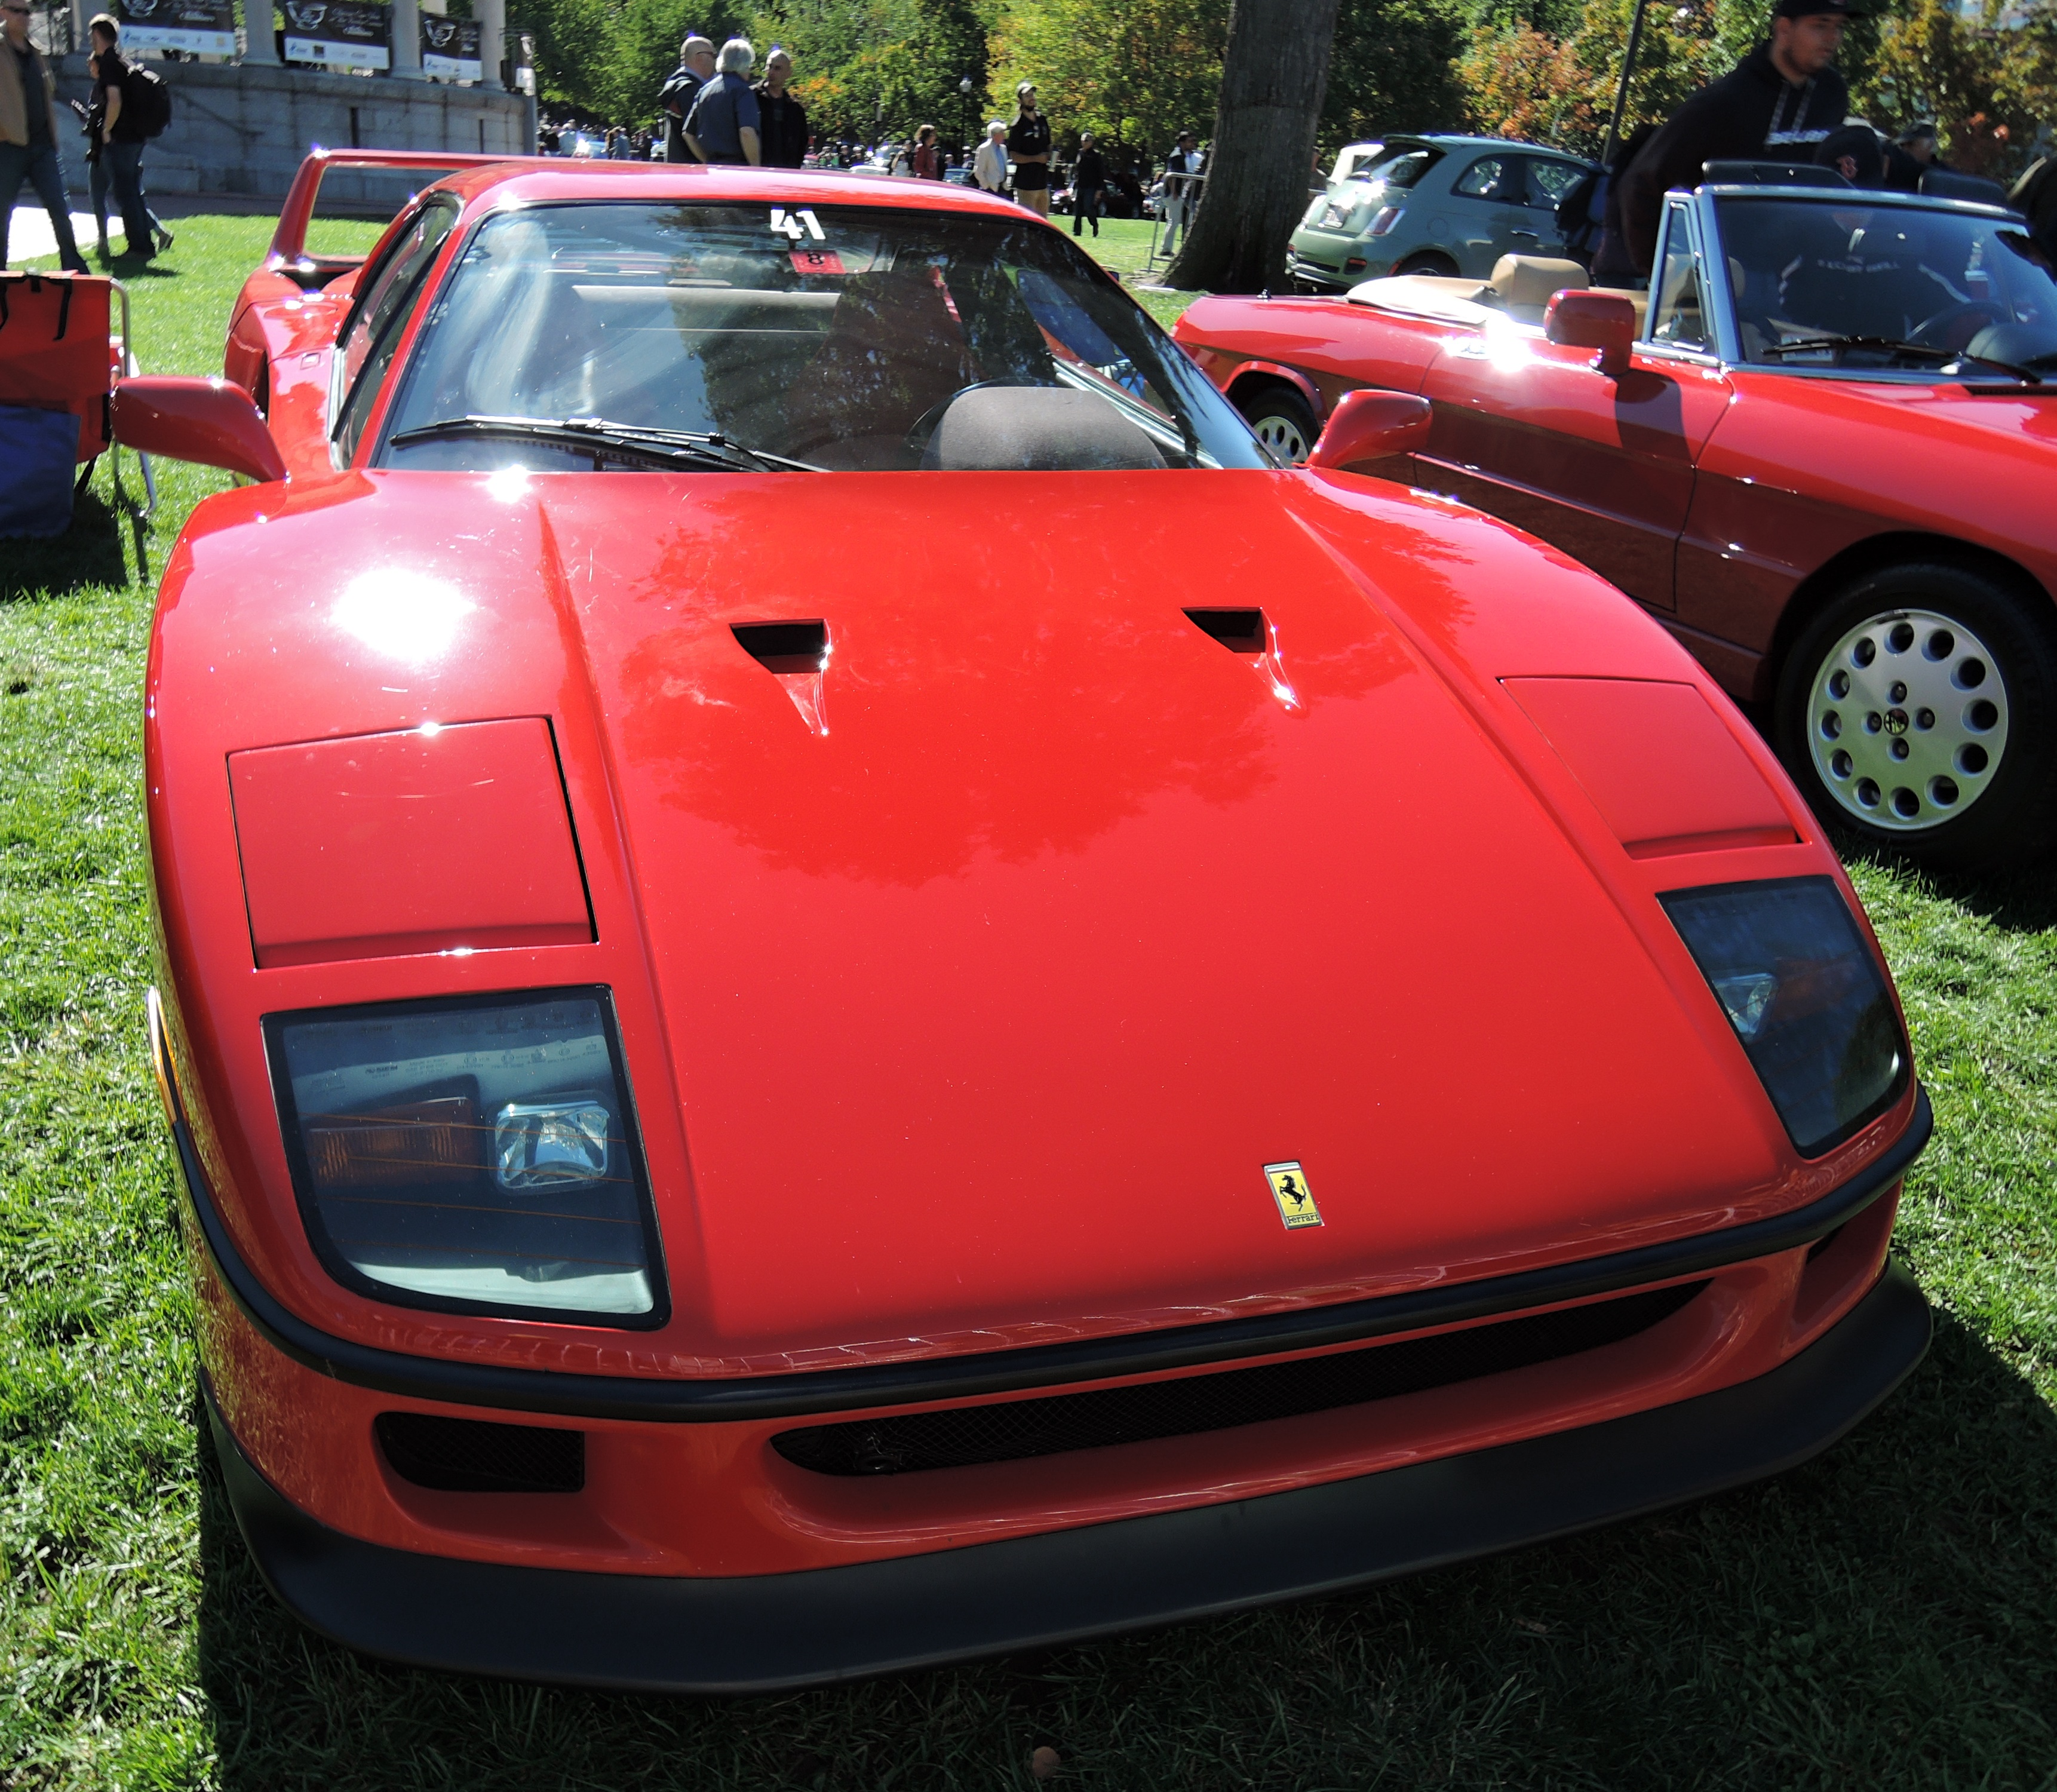 red 1992 Ferrari F40 - The Boston Cup on Boston Common